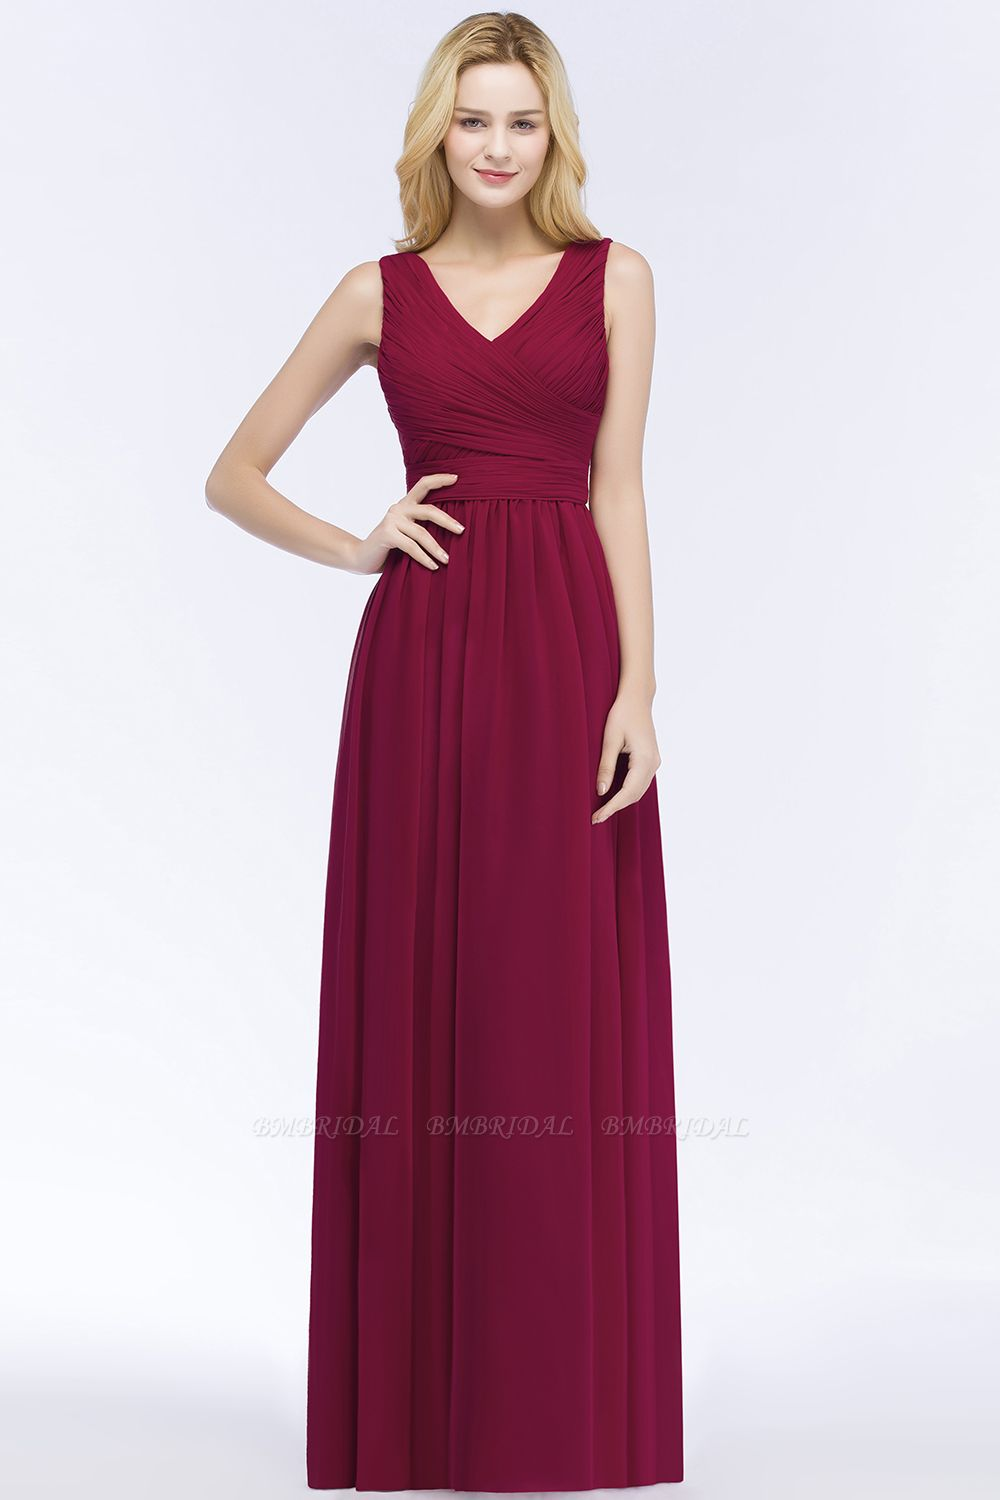 Vintage Sleeveless Pleated Burgundy Chiffon Bridesmaid Dresses Cheap